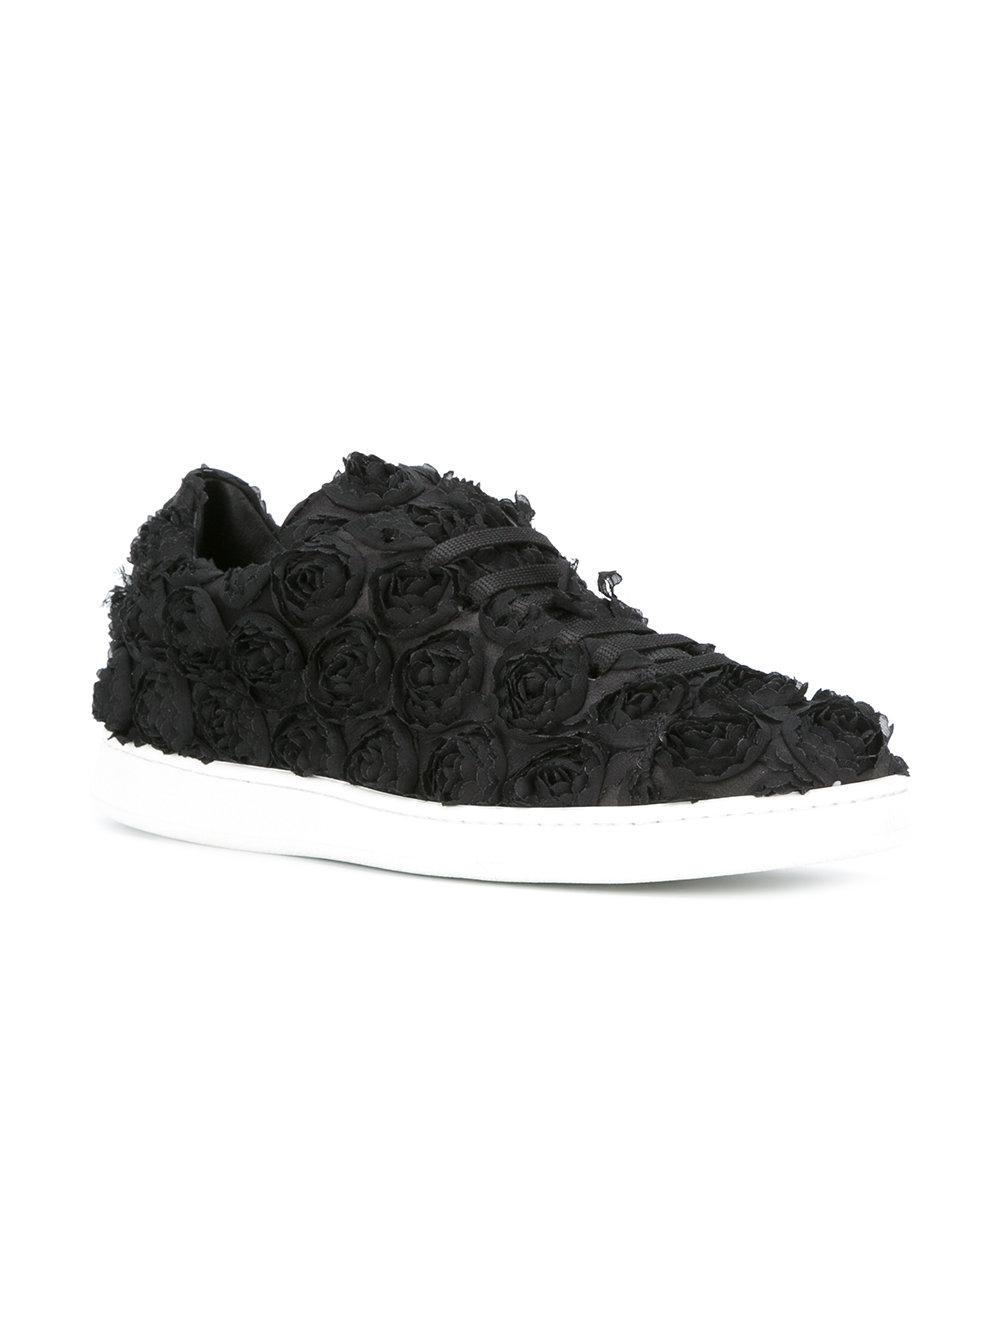 Outlet Prices Outlet From China JOSHUA SANDERS Roses sneakers Hyper Online xnoWk2GCRg